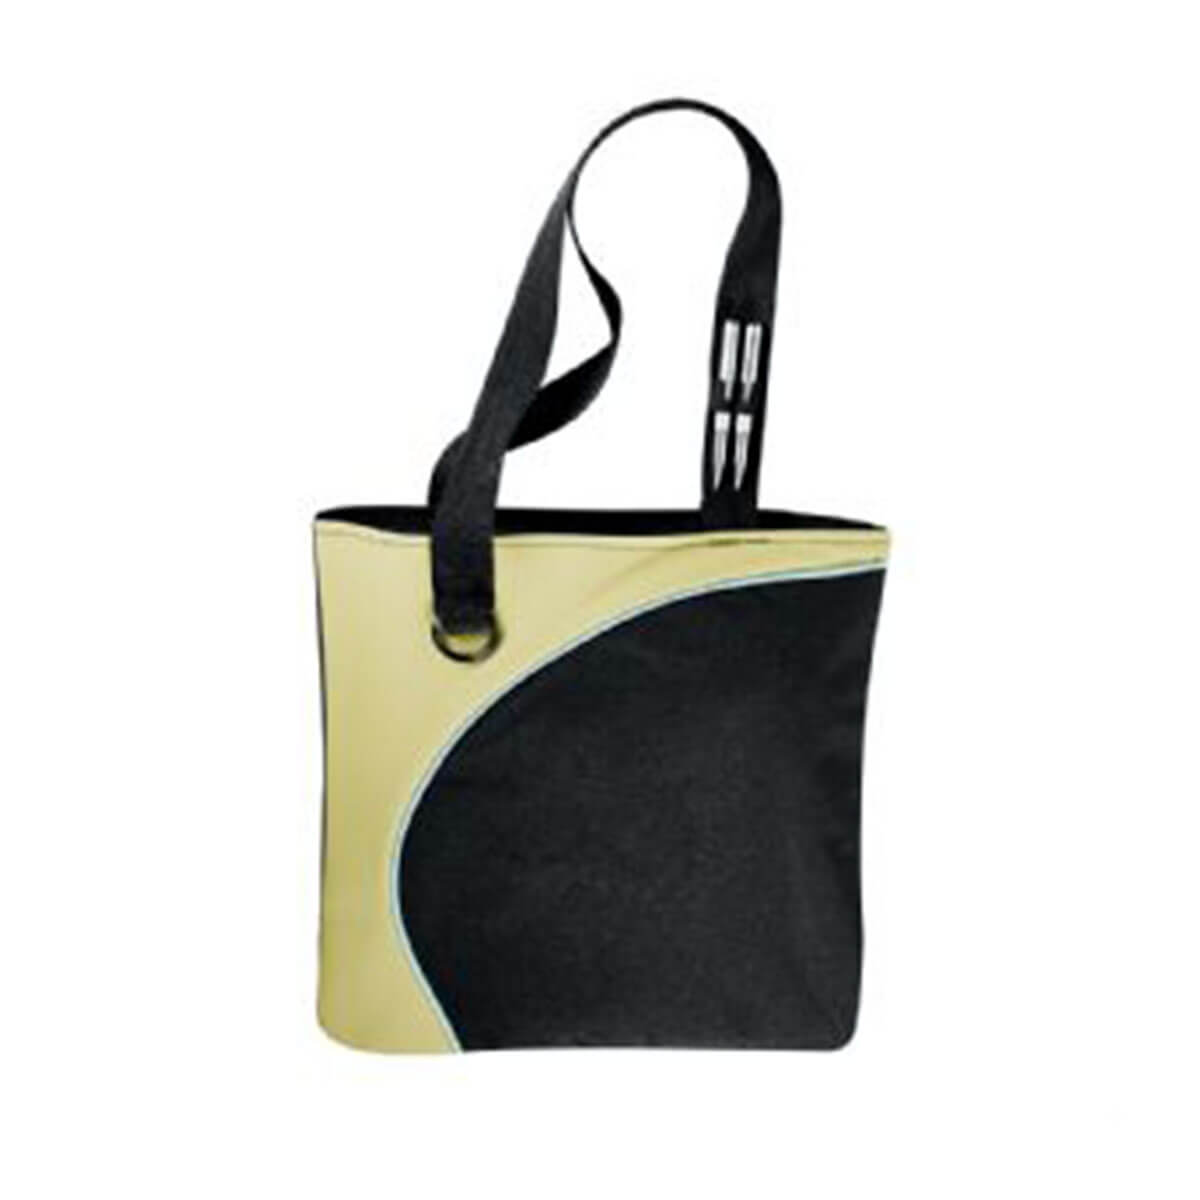 Lunar Convention Tote-Black and Green with White Trim.